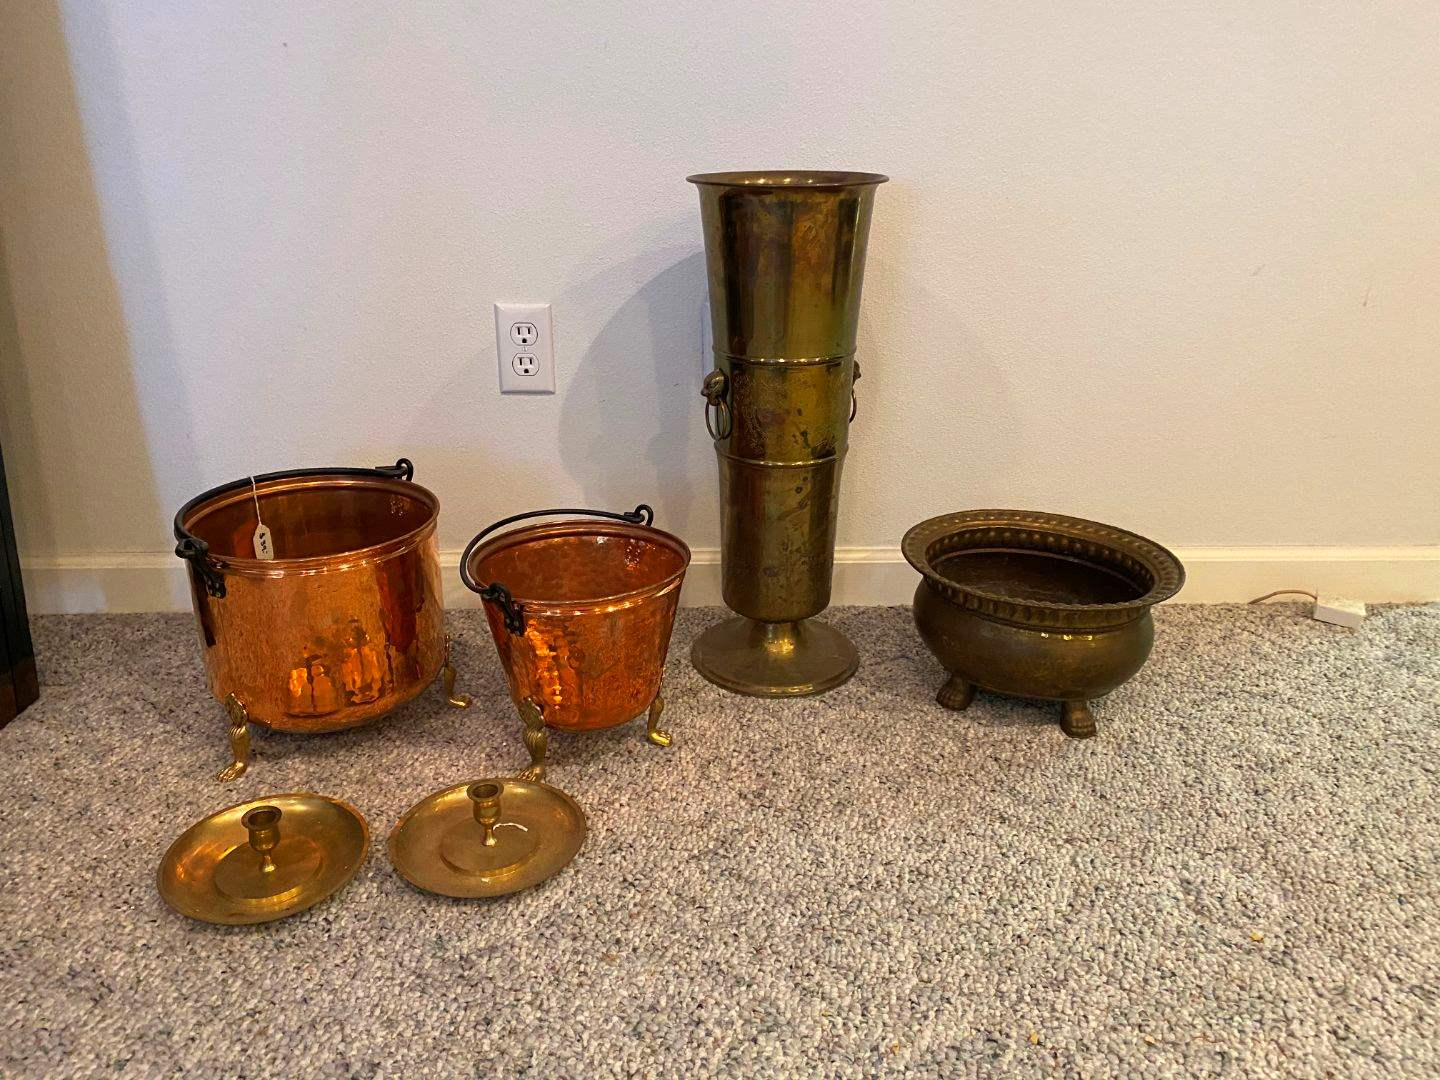 Lot # 263 - Brass Umbrella Stand, Copper Buckets/Pots, Brass Candle Stick Holders & Italian Brass/Copper Bucket (main image)